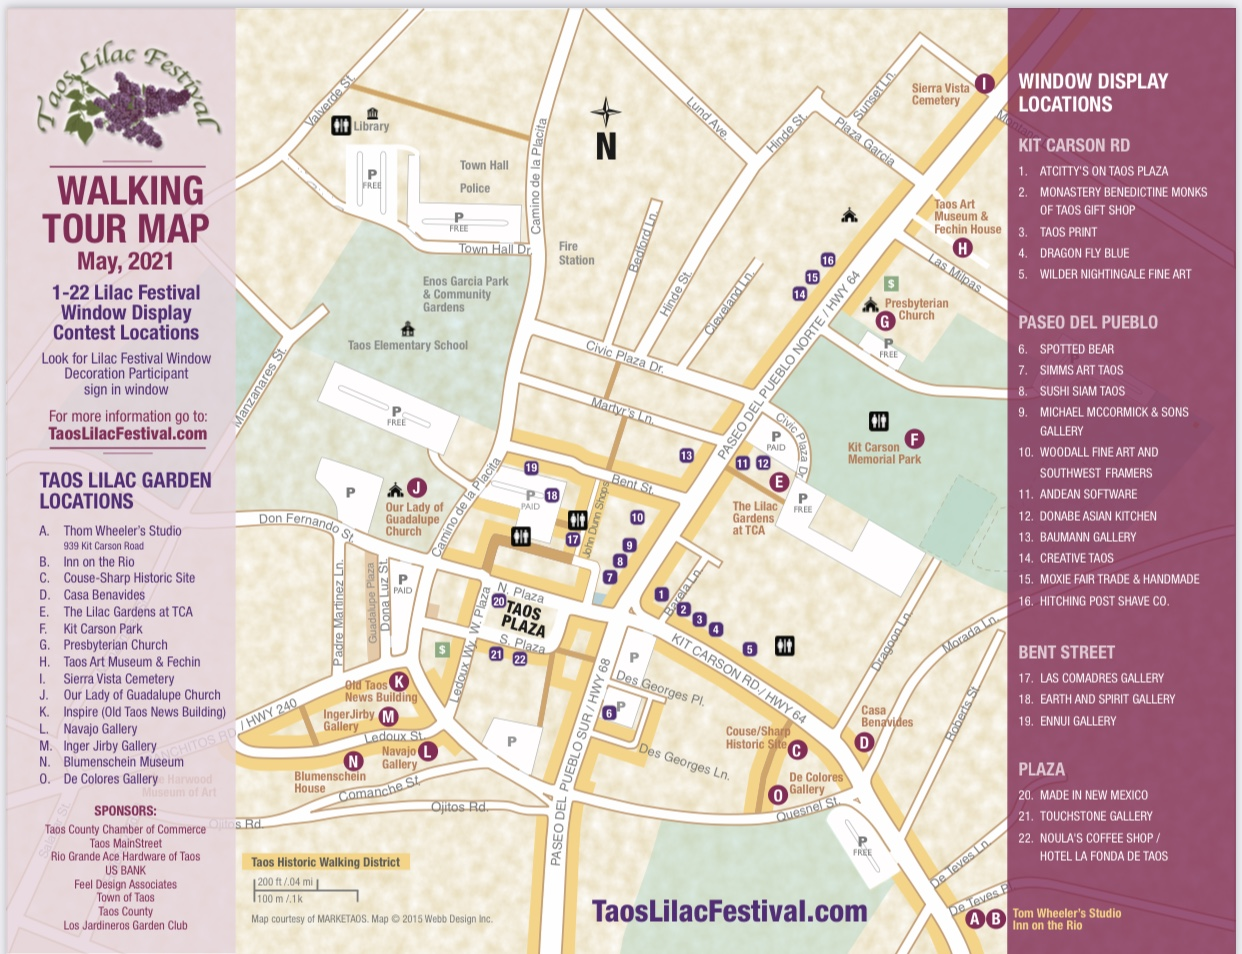 www.TaosLilacFestival.com  - Taos Lilac Walking Tour Map - Only this year!